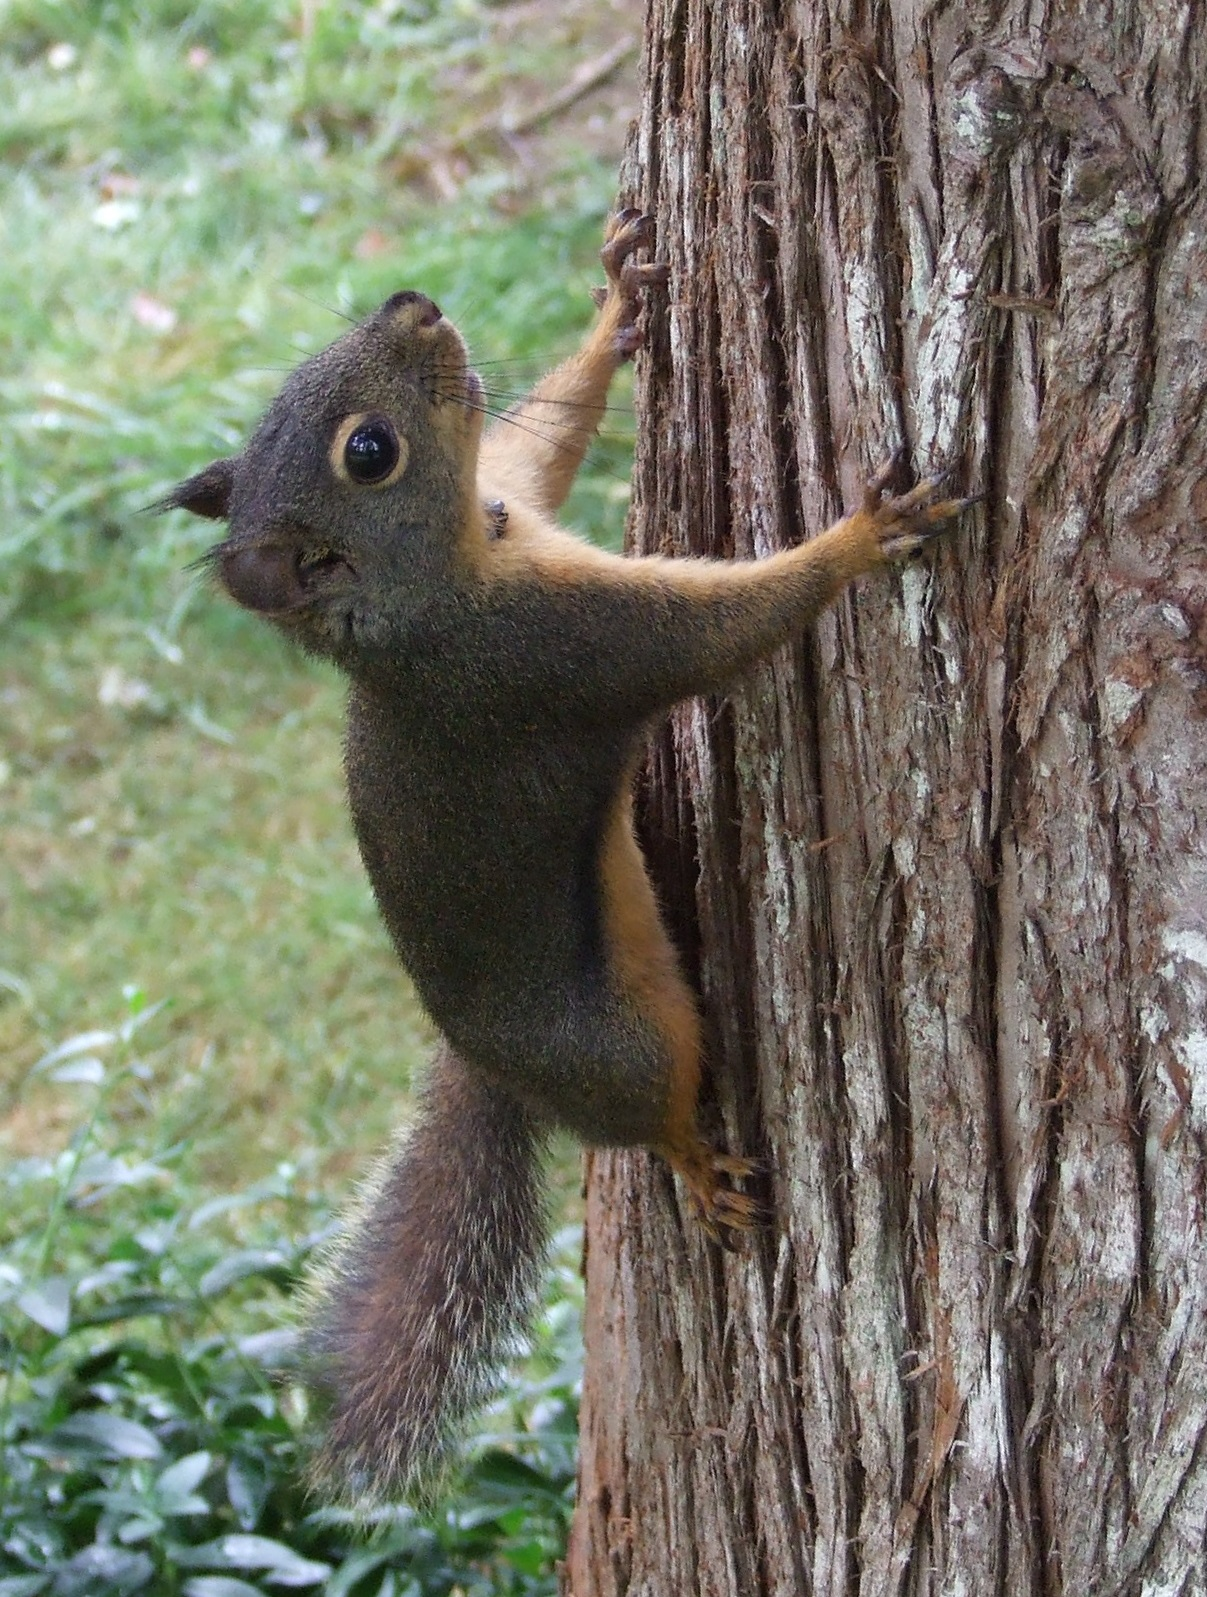 My wife enjoyed playing hide-and-peek with Douglas Squirrels inquisitivly running around tree trunks